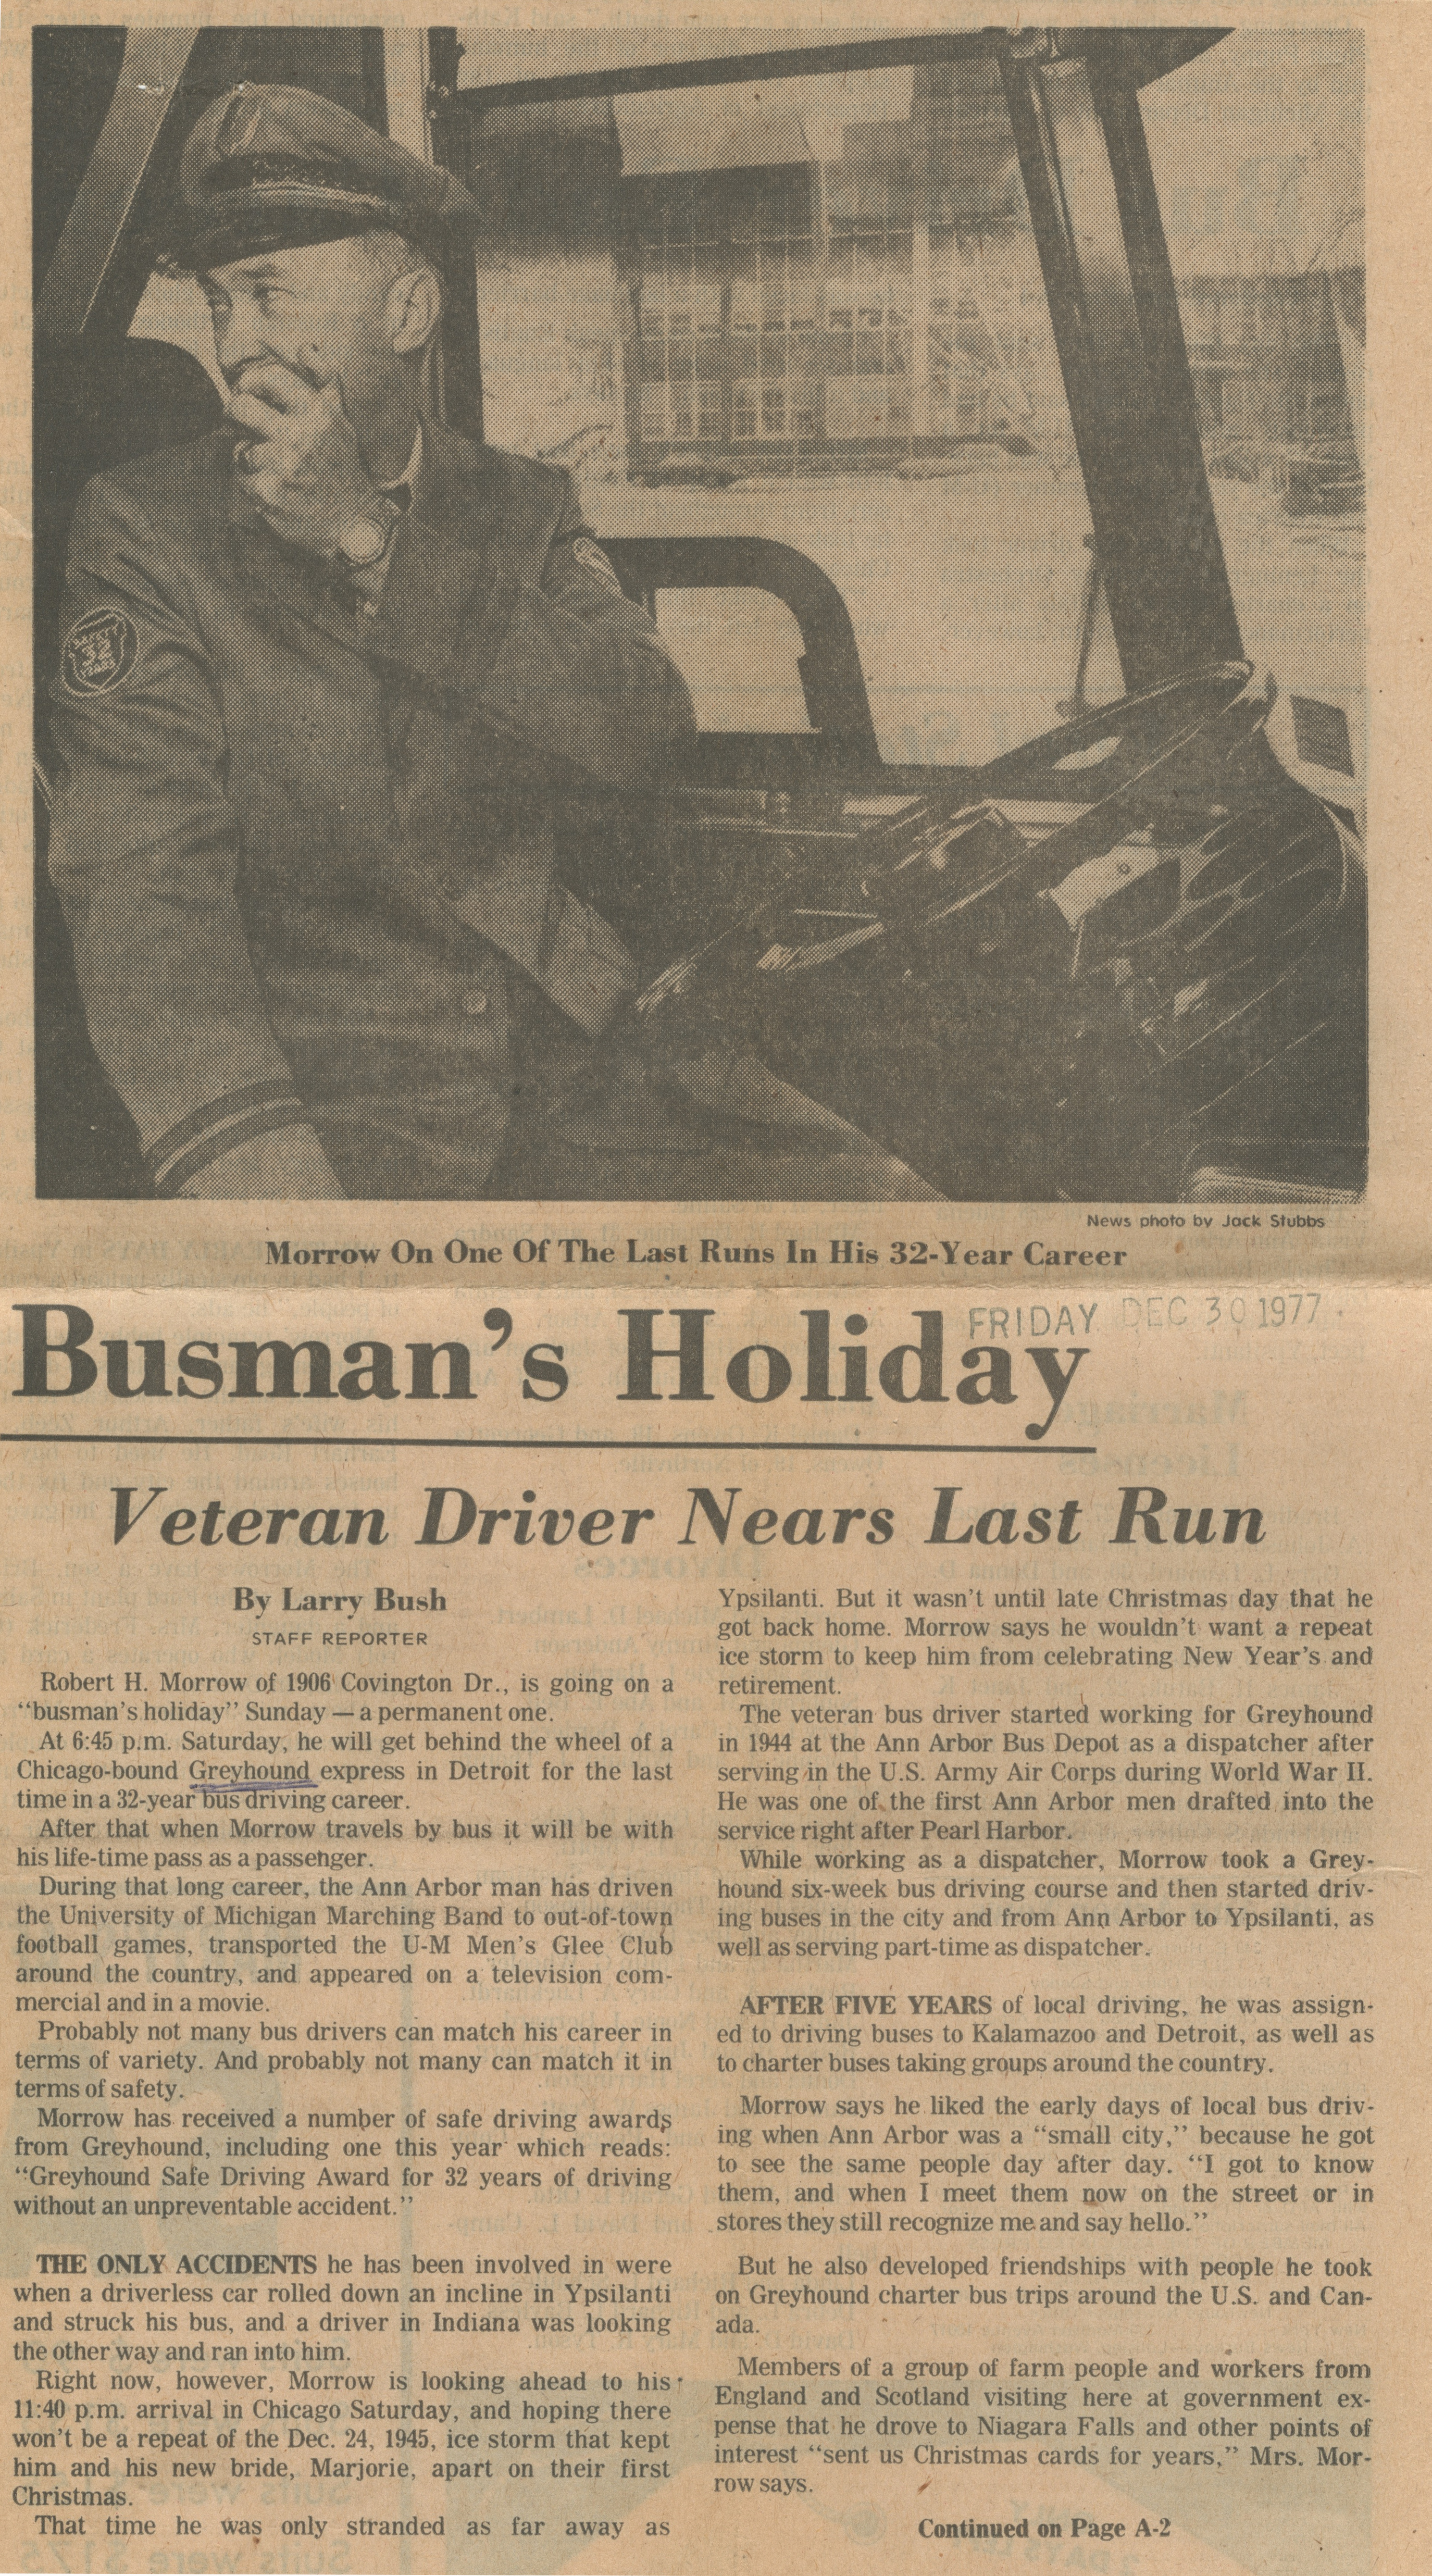 Busman's Holiday - Veteran Drive Nears Last Run image